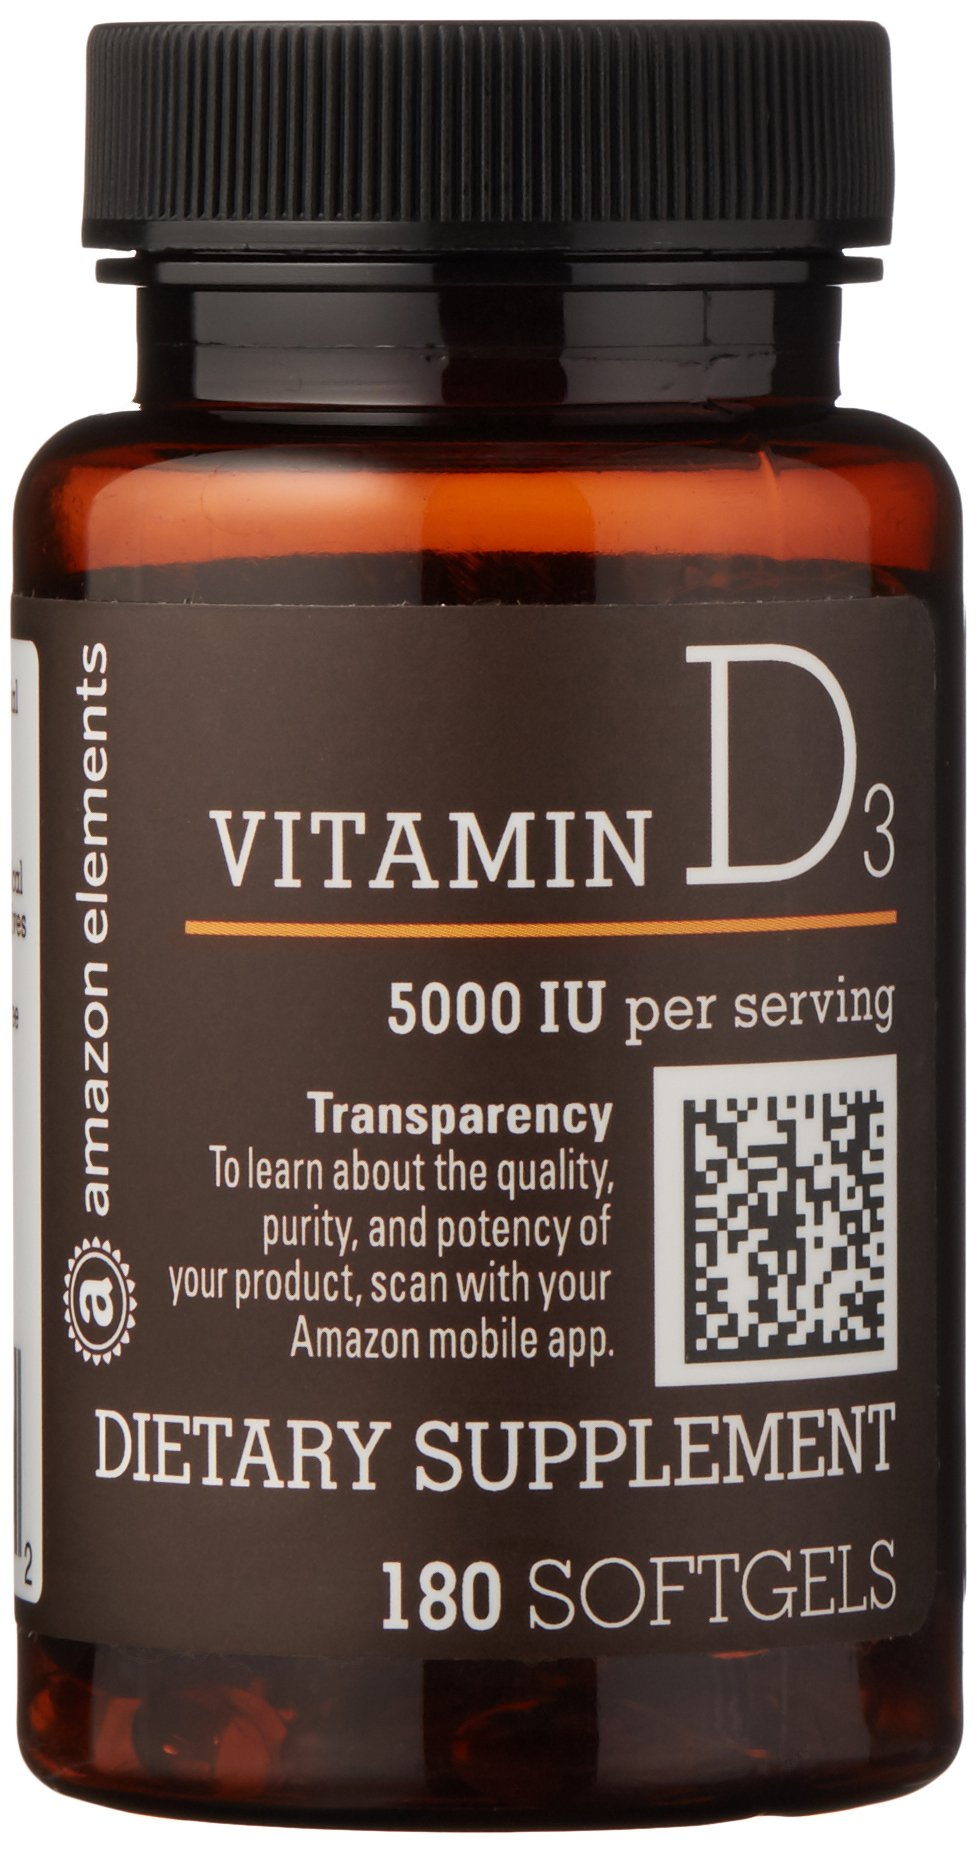 Amazon Elements Vitamin D3, 5000 IU, 180 Softgels, 6 month supply